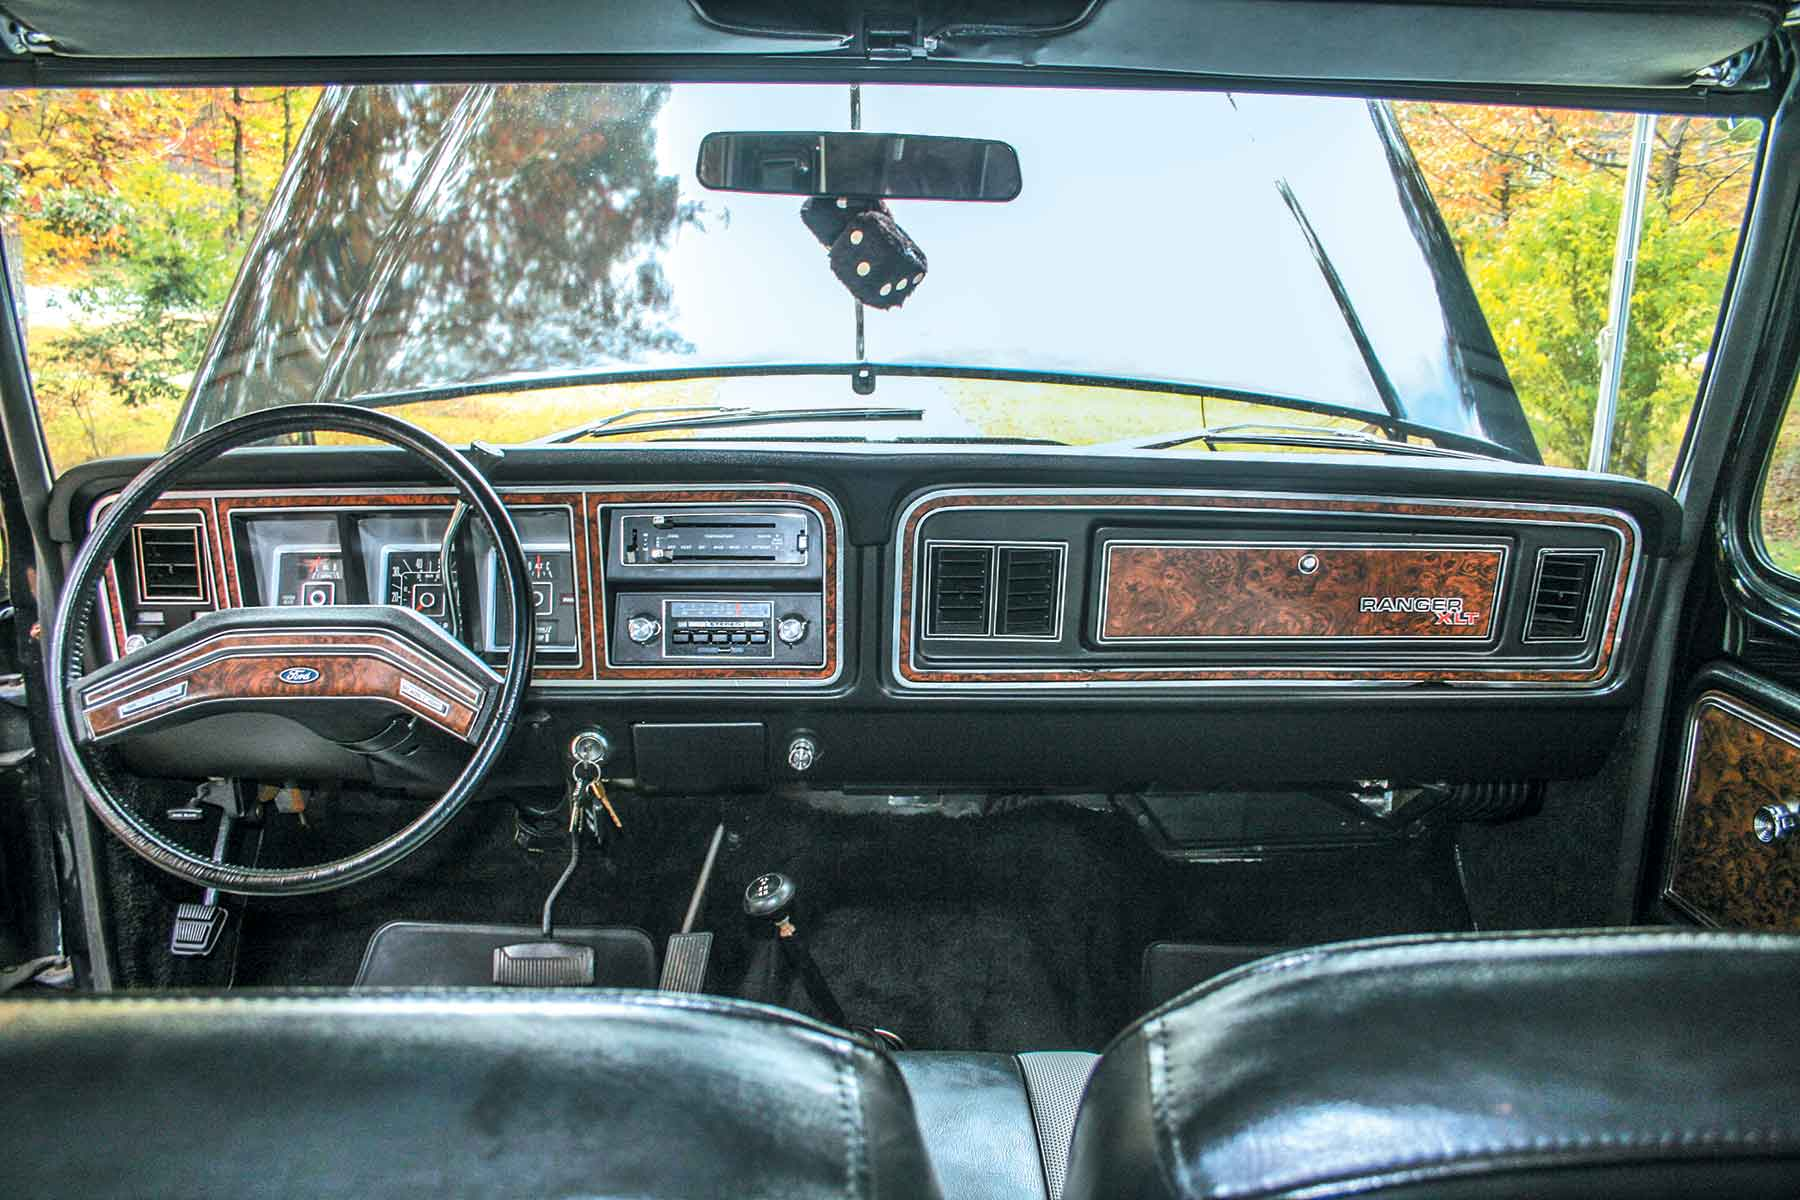 bronco 1978 ford truck interior lmc brooks david story reserved rights copyright